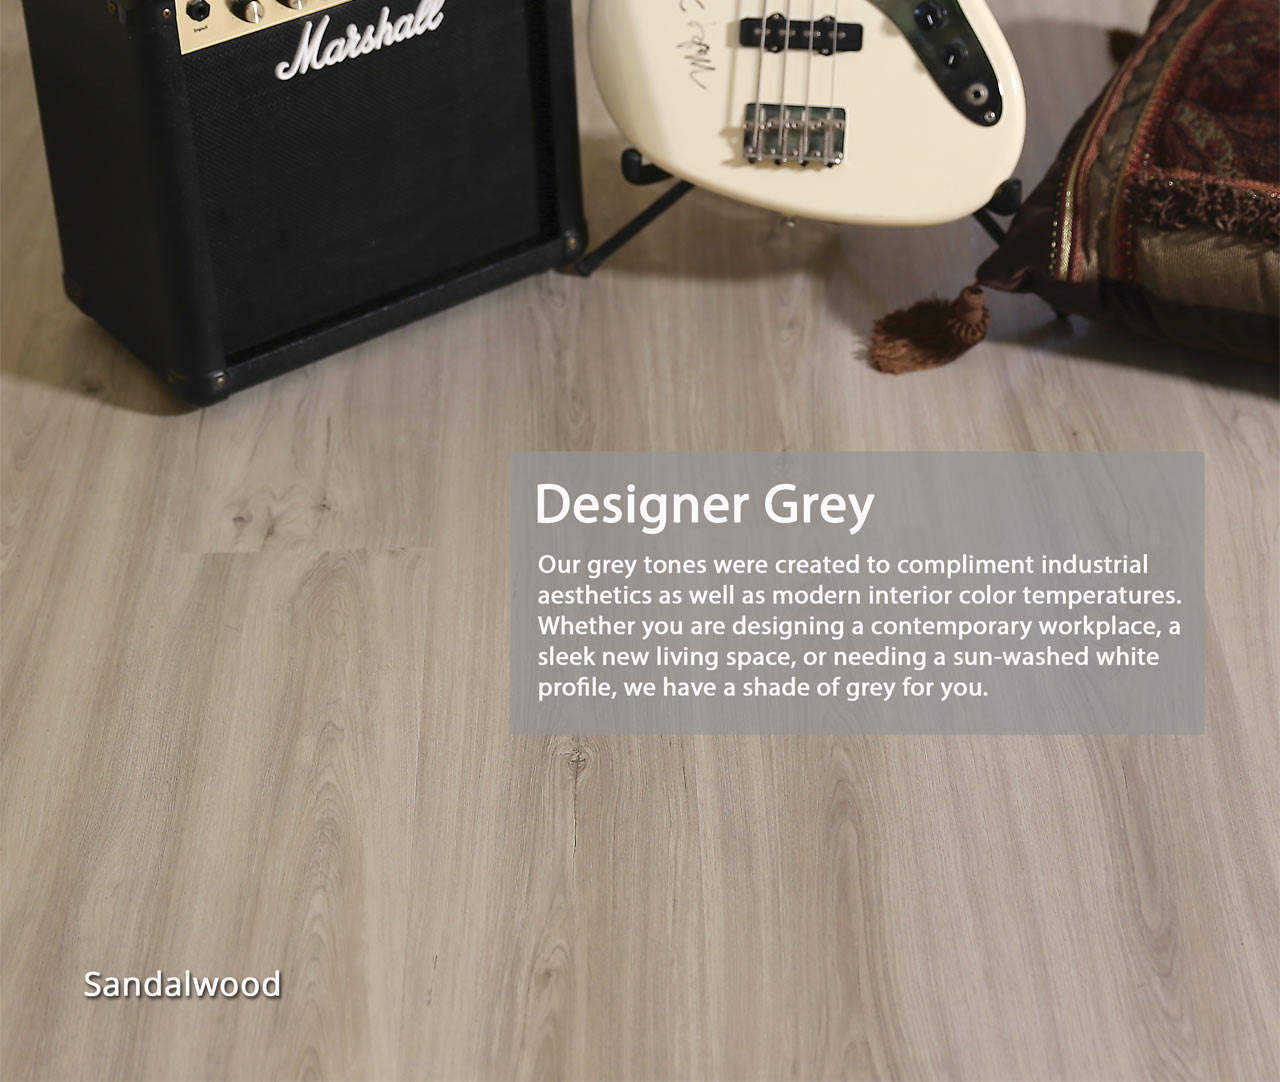 Designer-Grey-Website-B